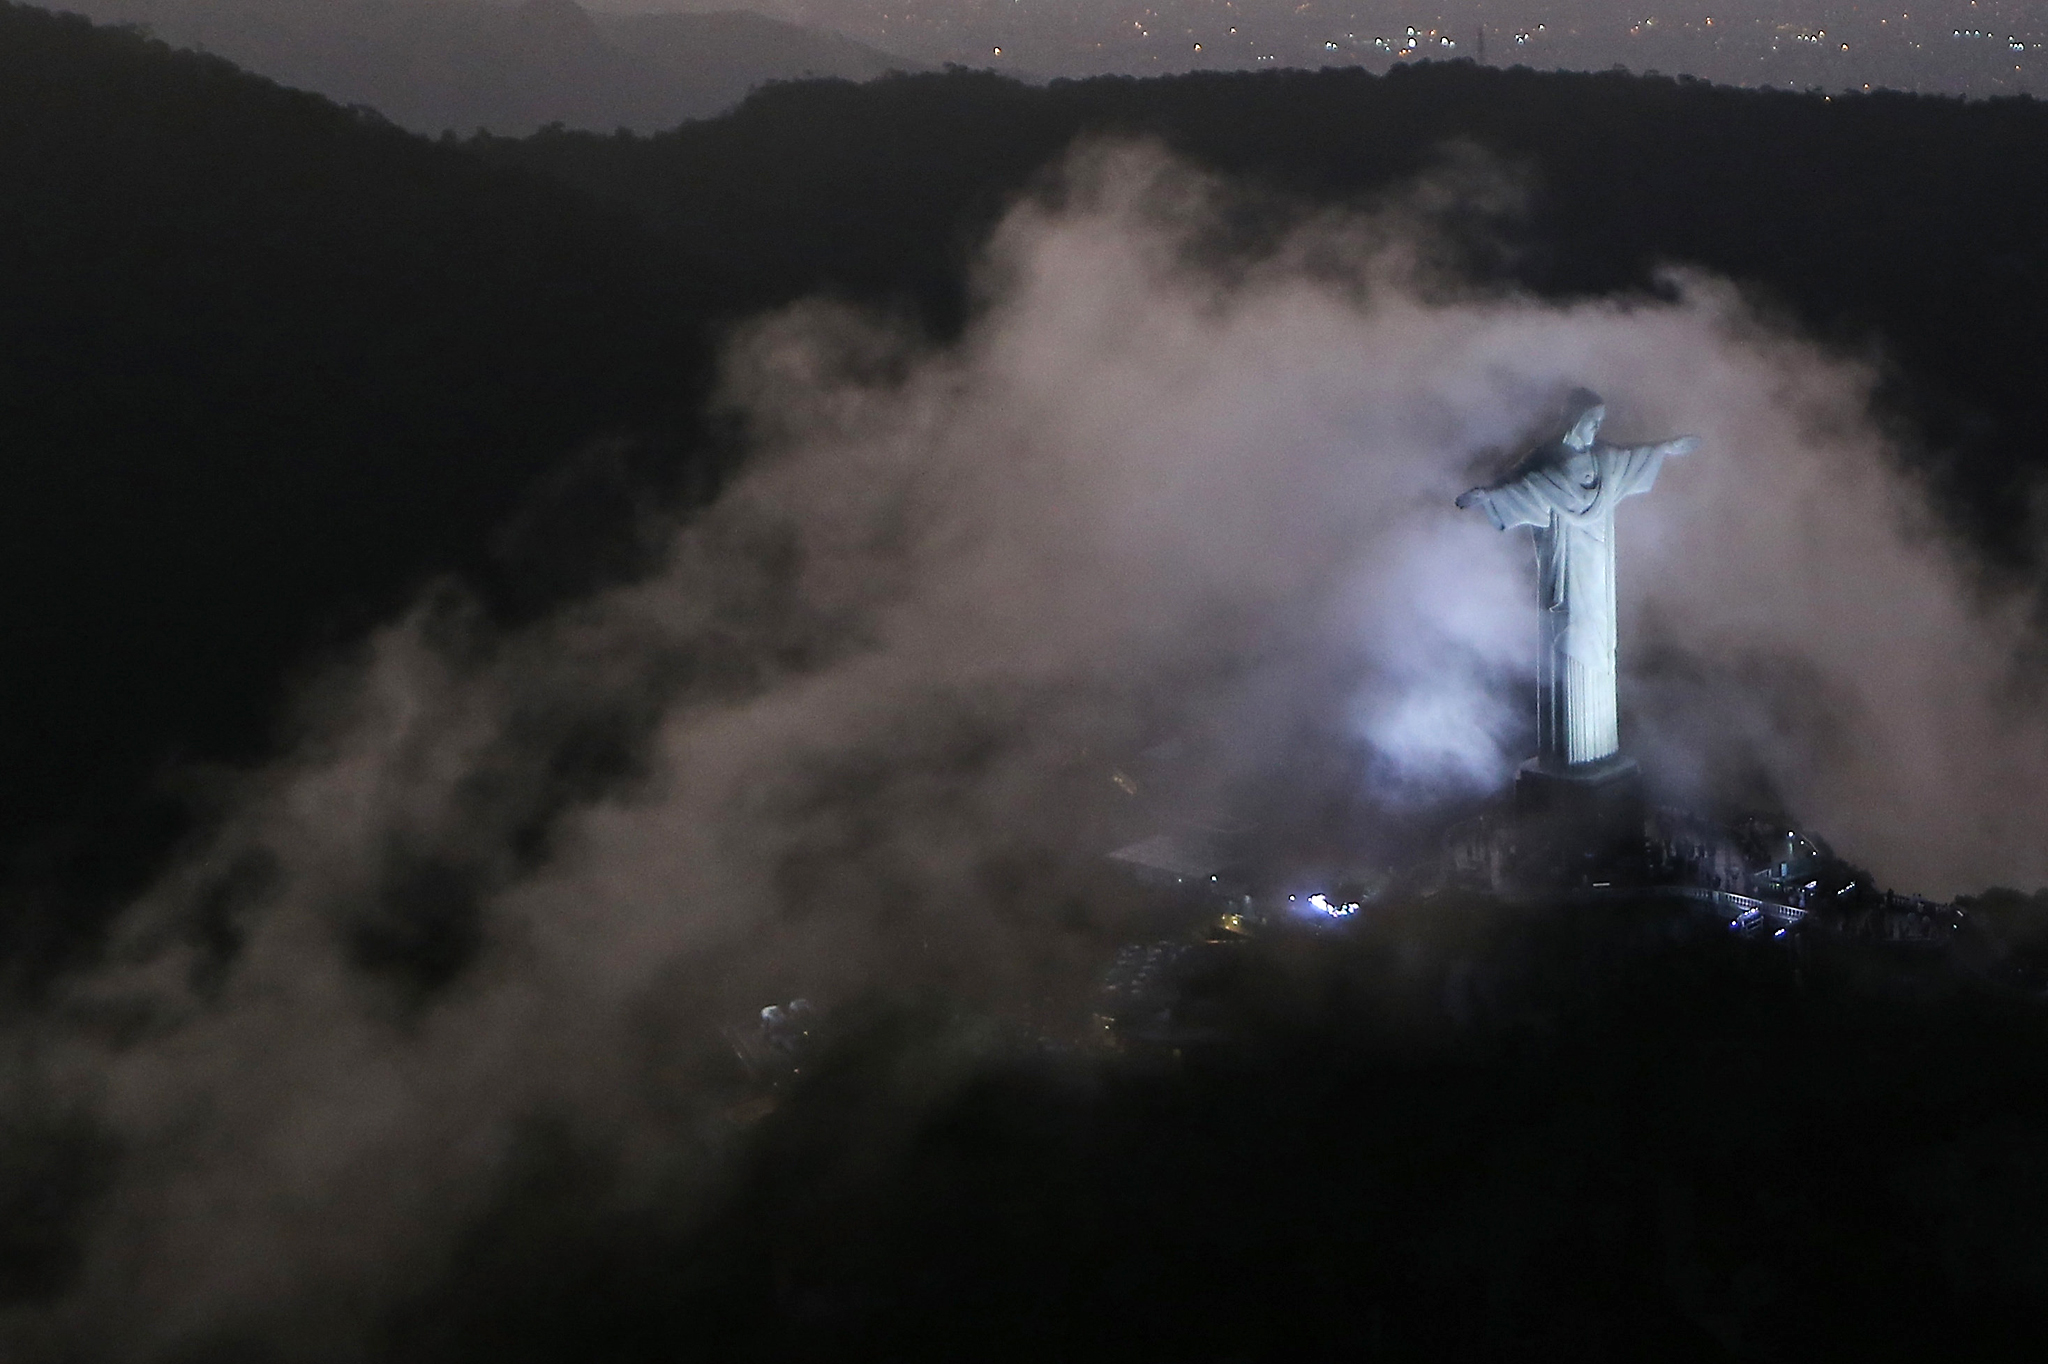 RIO DE JANEIRO, BRAZIL - JULY 31:  An aerial view of the Christ the Redeemer statue amidst mist as Rio prepares for the 2016 Summer Olympic Games on July 31, 2016 in Rio de Janeiro, Brazil.  (Photo by Mario Tama/Getty Images)